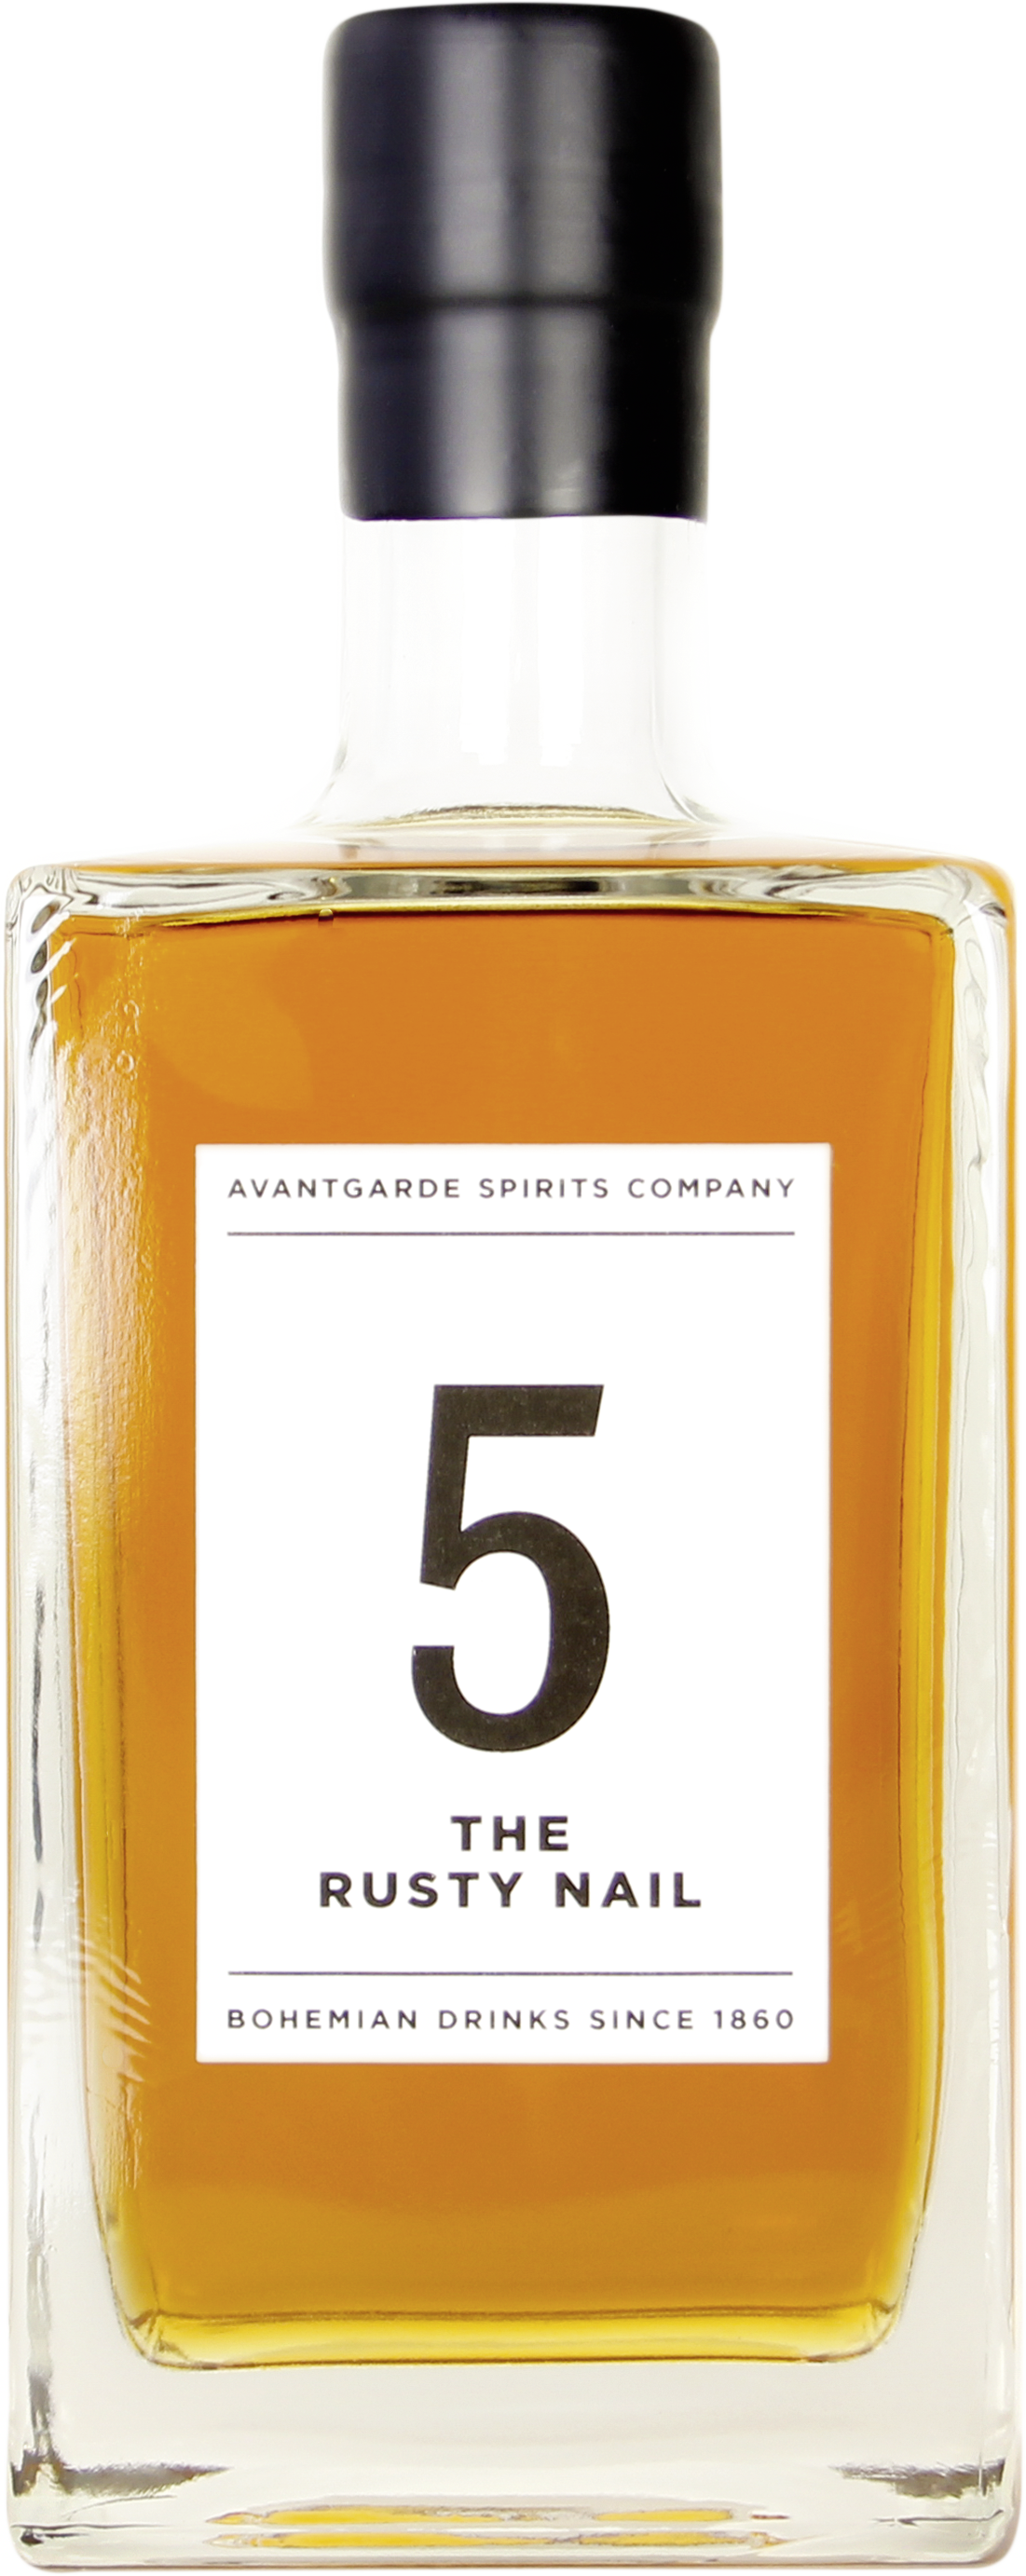 AVANTGARDE SPIRITS COMPANY - 5 The Rusty Nail